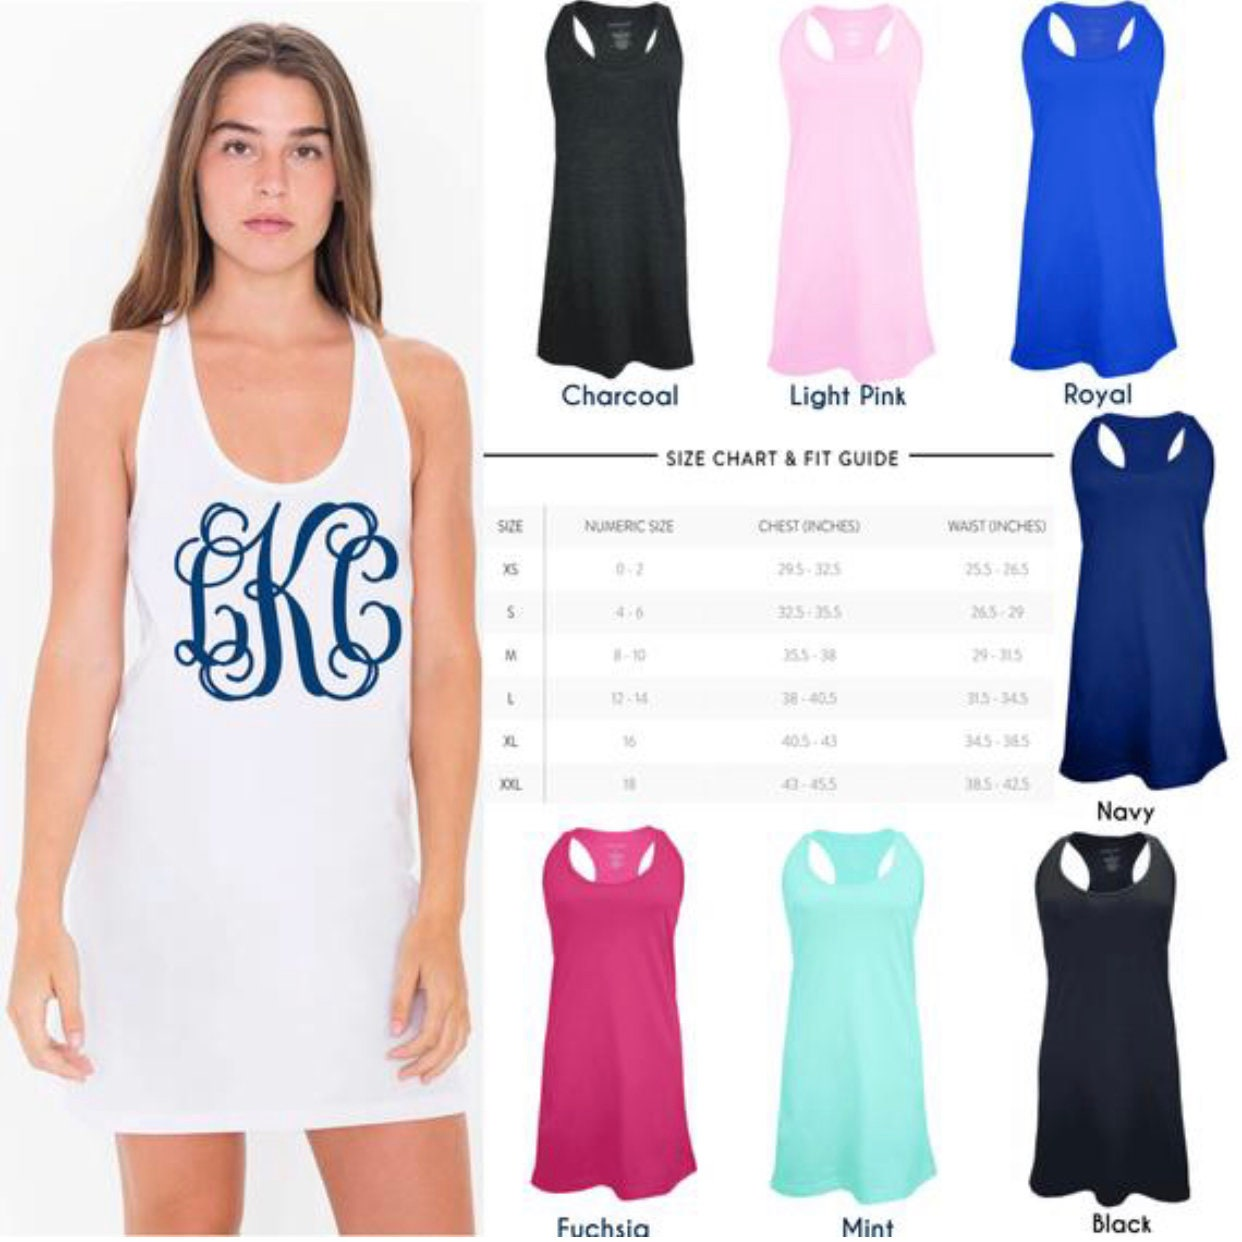 da4bce86f4 ... Cover Ups, Monogrammed Beach Coverup, Tank dress, Bridesmaid Gifts,  Cruise, Wedding, Bachelorette. gallery photo gallery photo ...